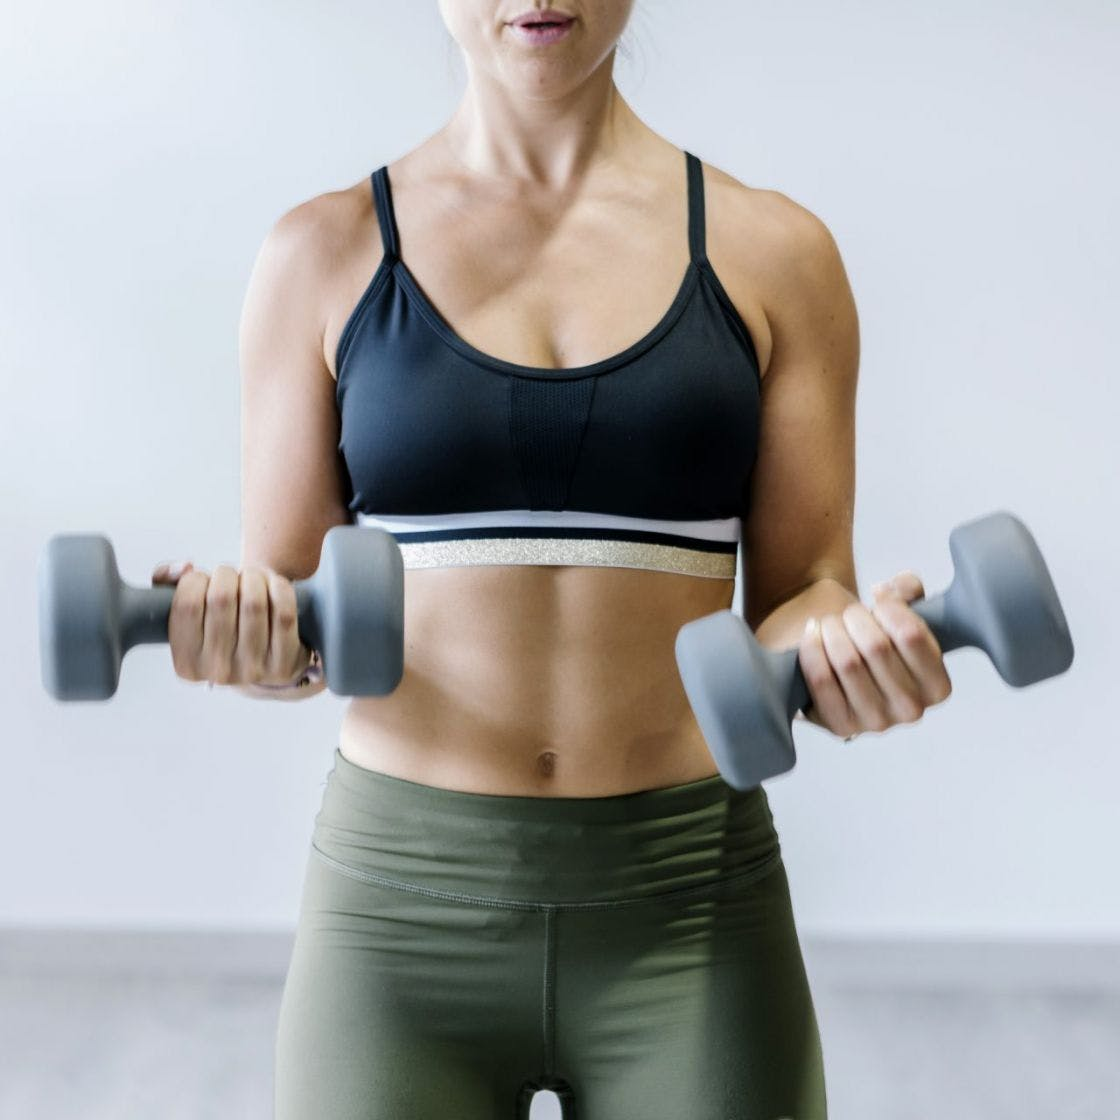 How to build more lean muscle mass